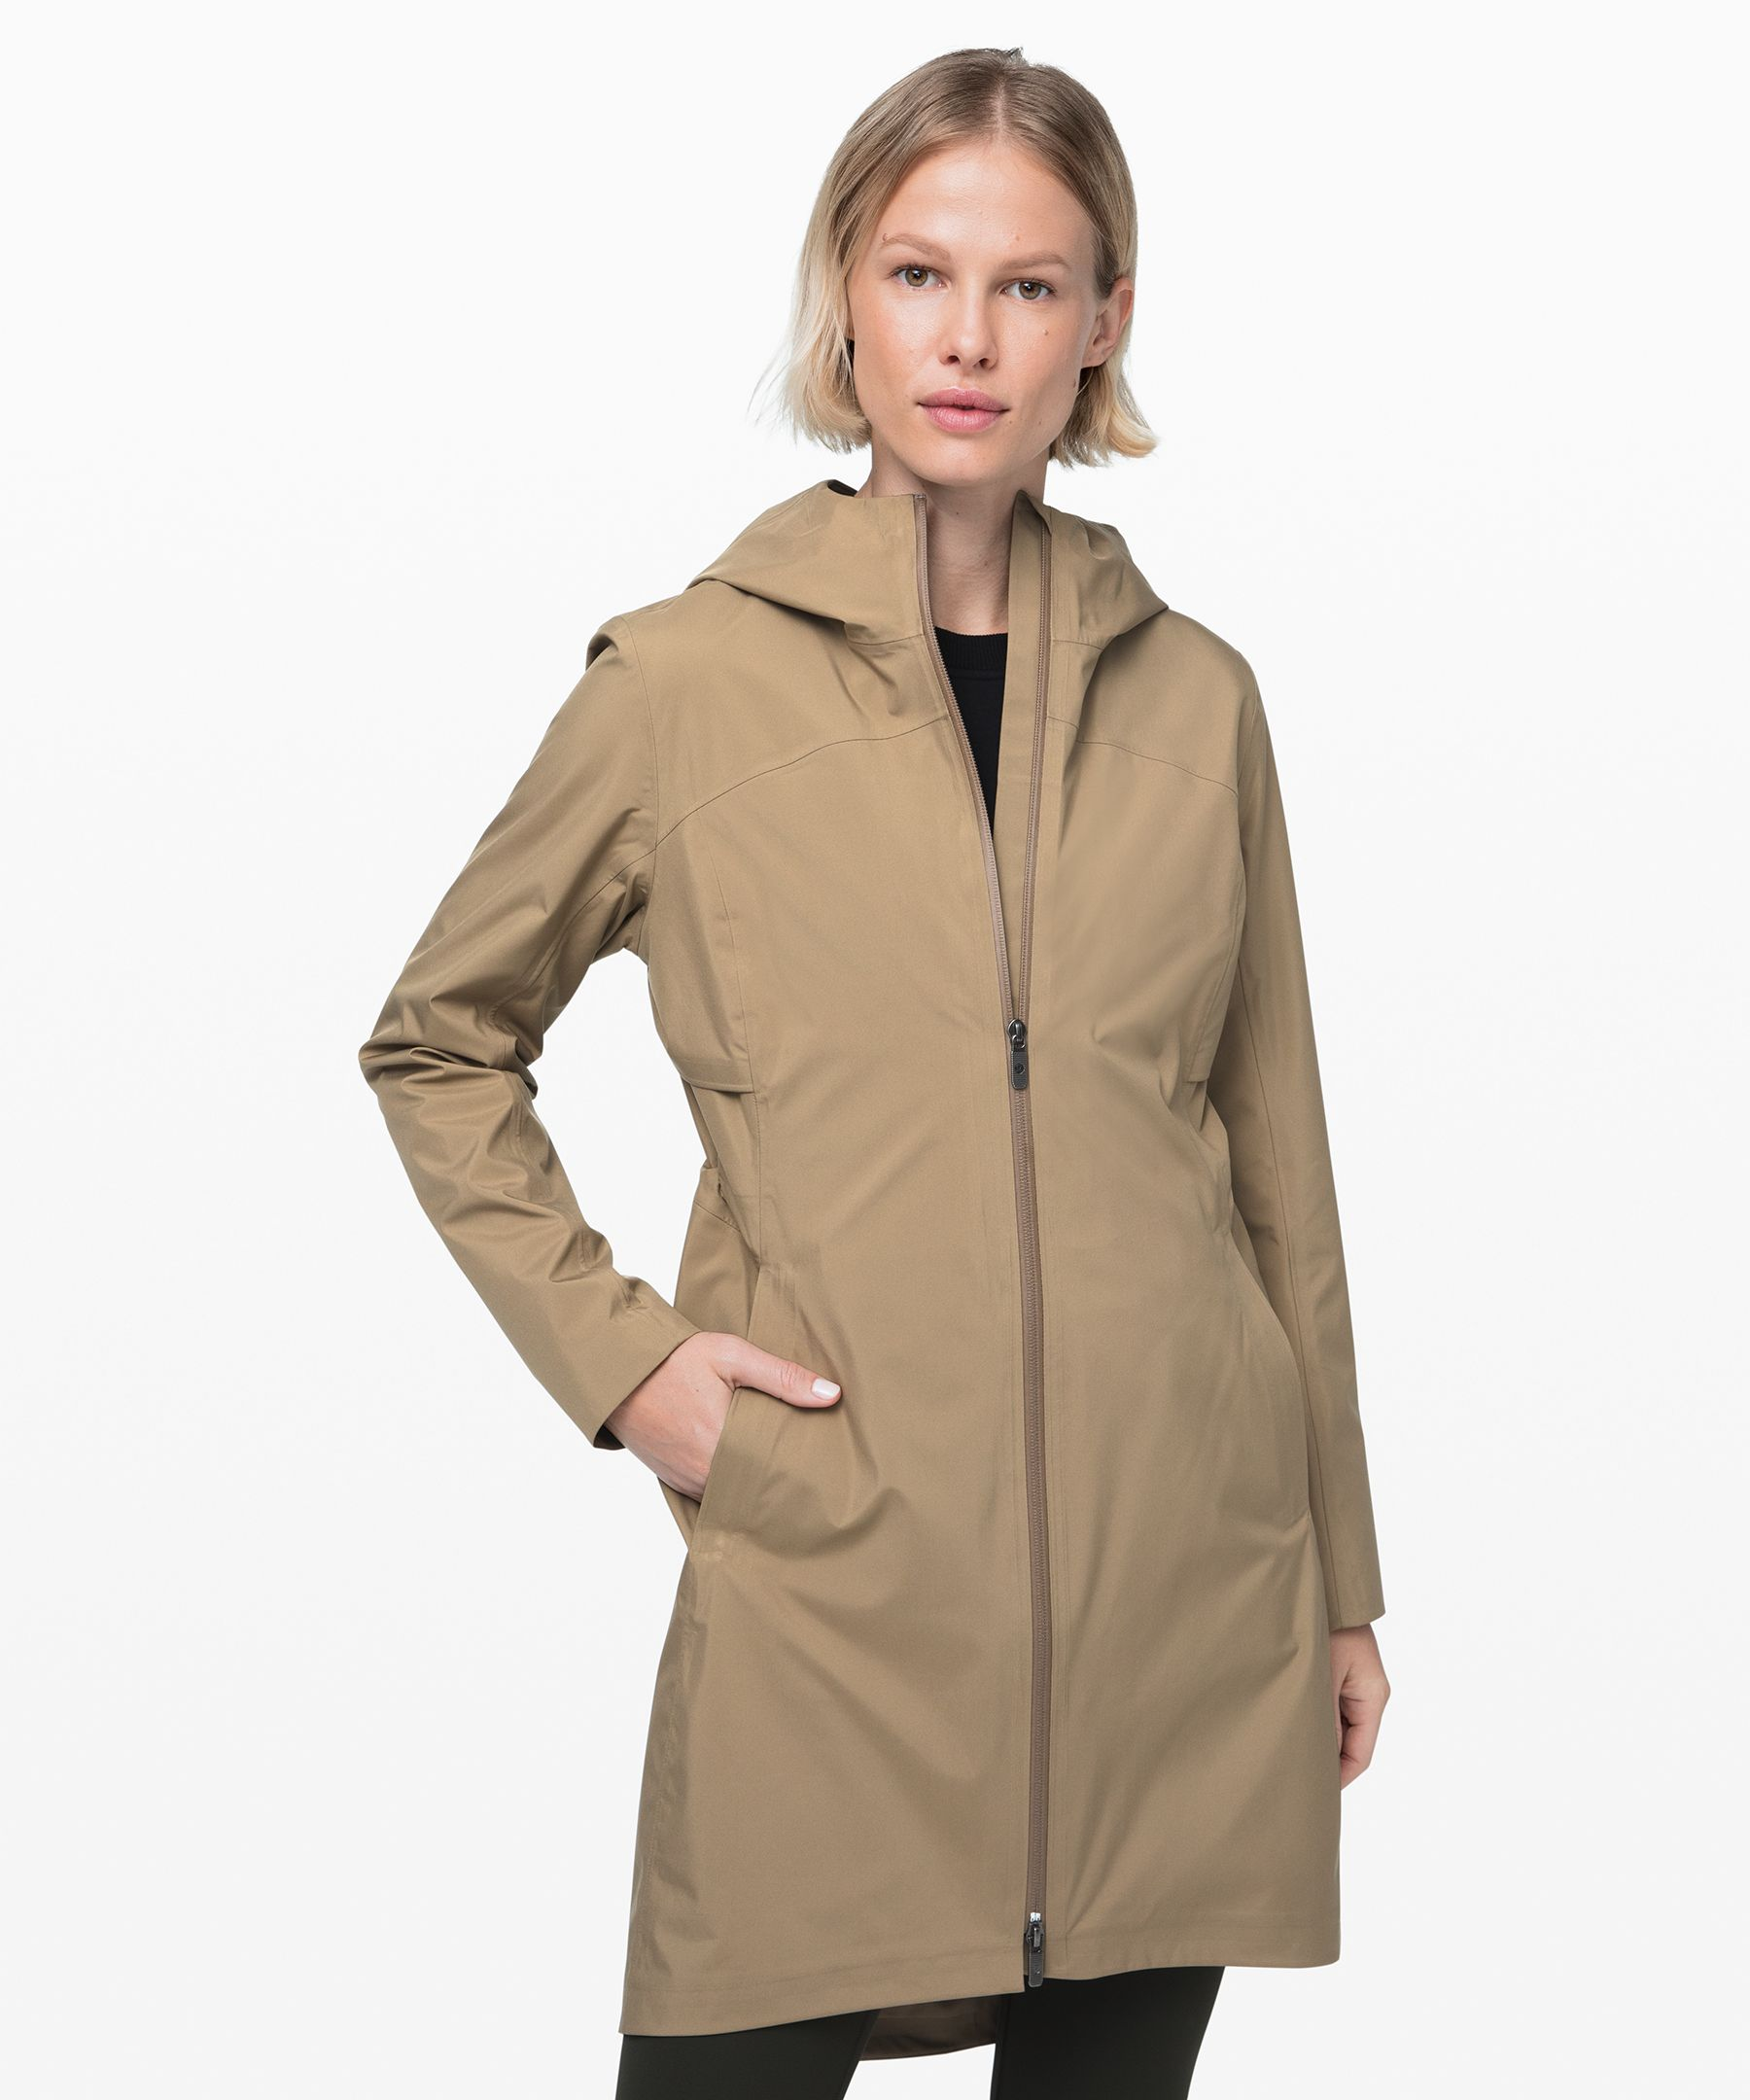 Shake off wet weather with this sleek rain jacket. The waterproof exterior and soft, sweat-wicking liner will keep you happy and dry.